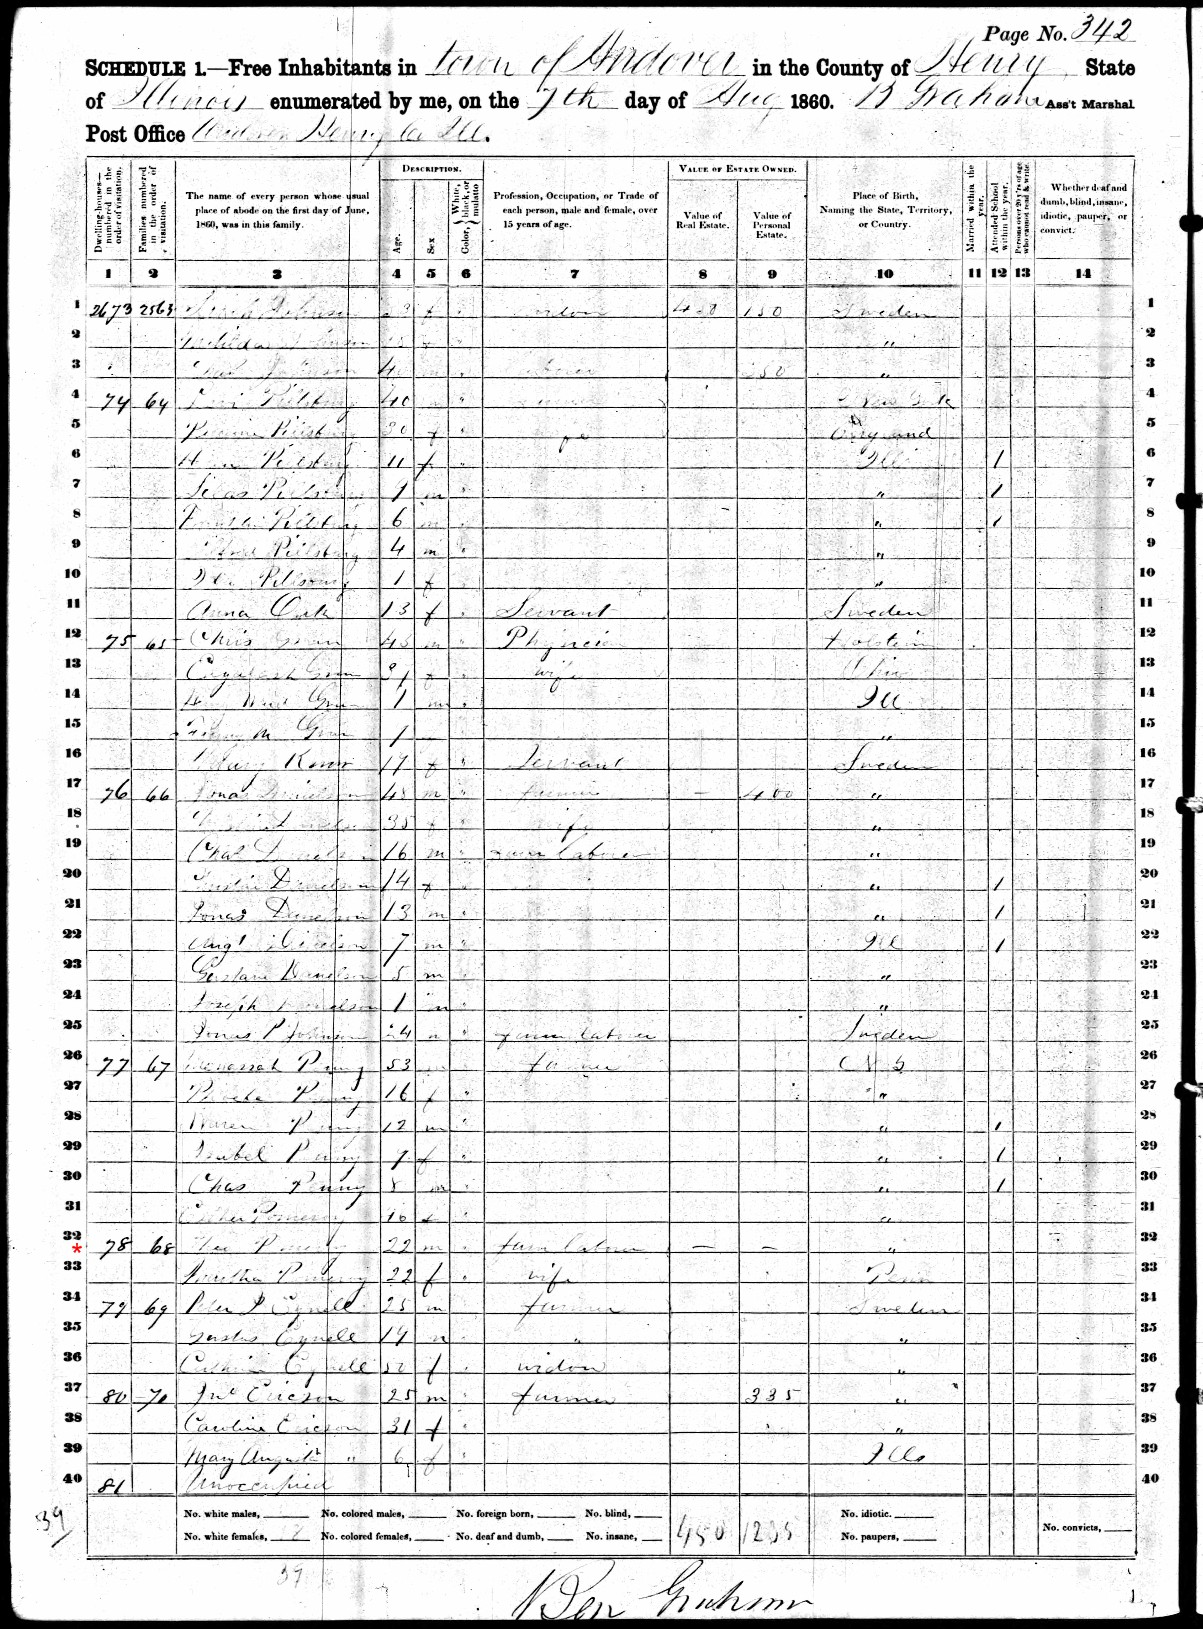 Illinois henry county andover - She Was Born July 21 1860 In Andover Henry County Illinois They Were Married At The Tiskilwa House On August 20 1879